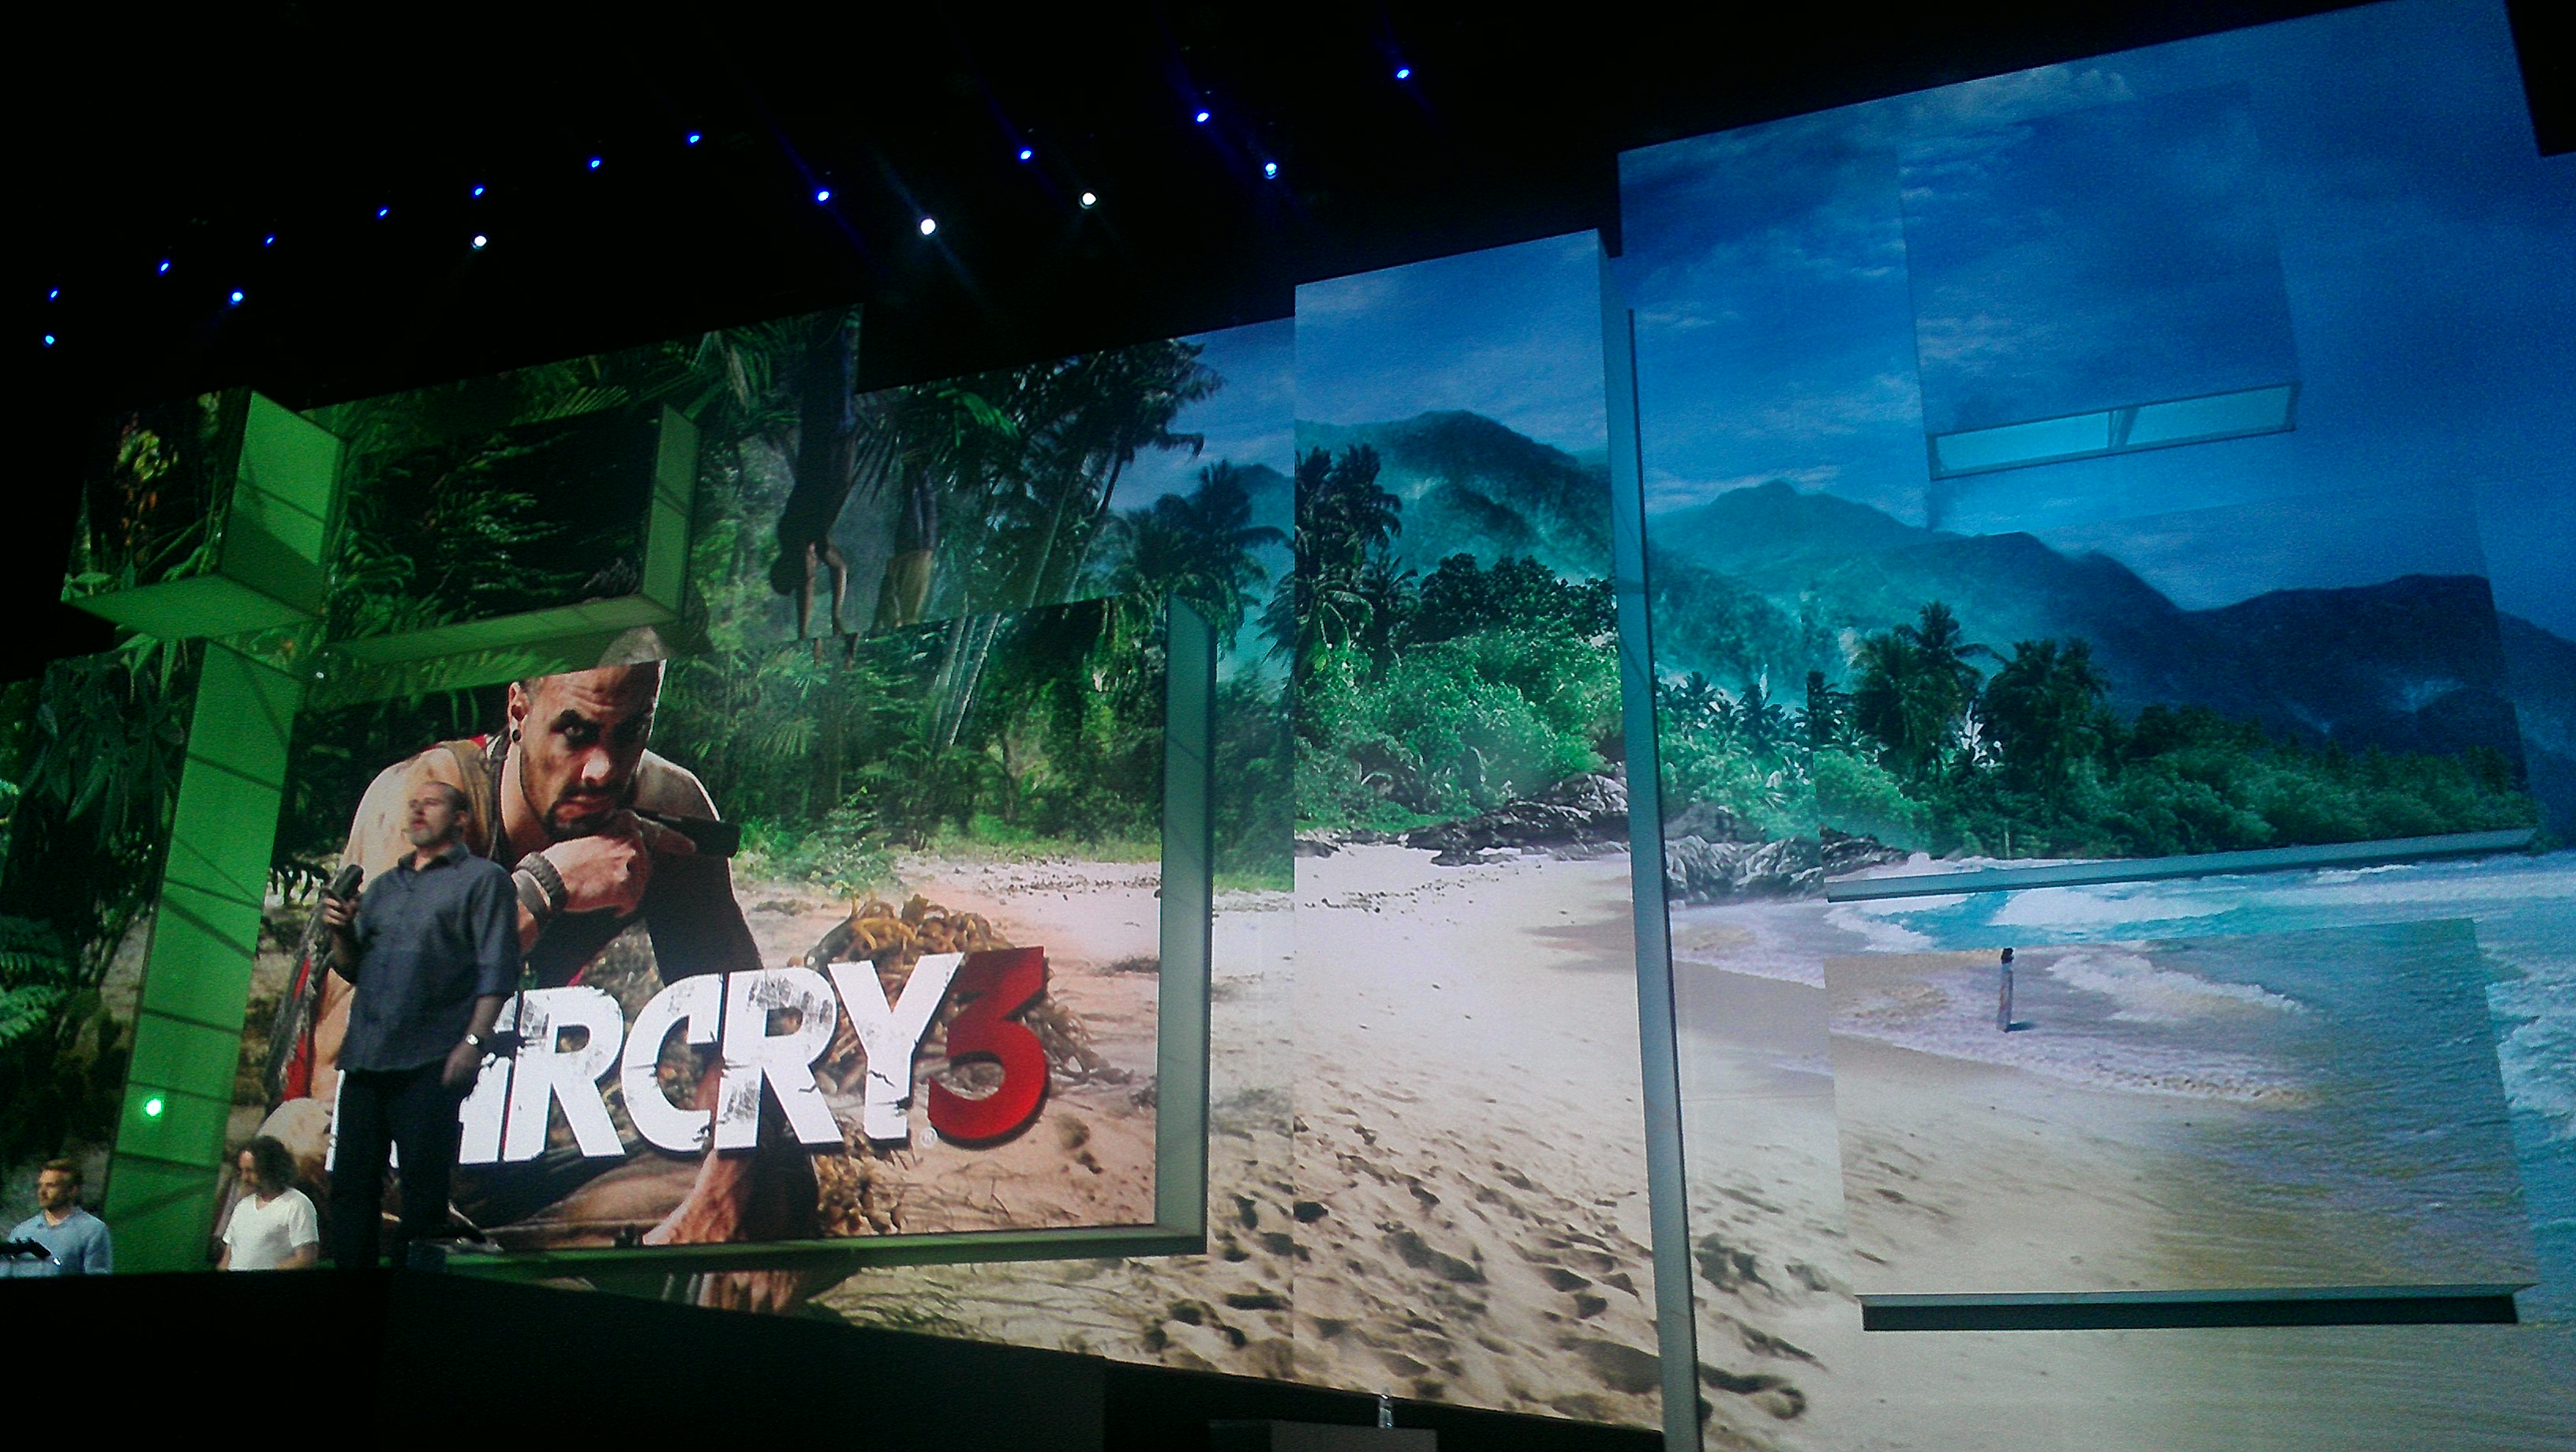 Ubisoft: <i>Far Cry 3</i> Means Tears of Joy for Fans